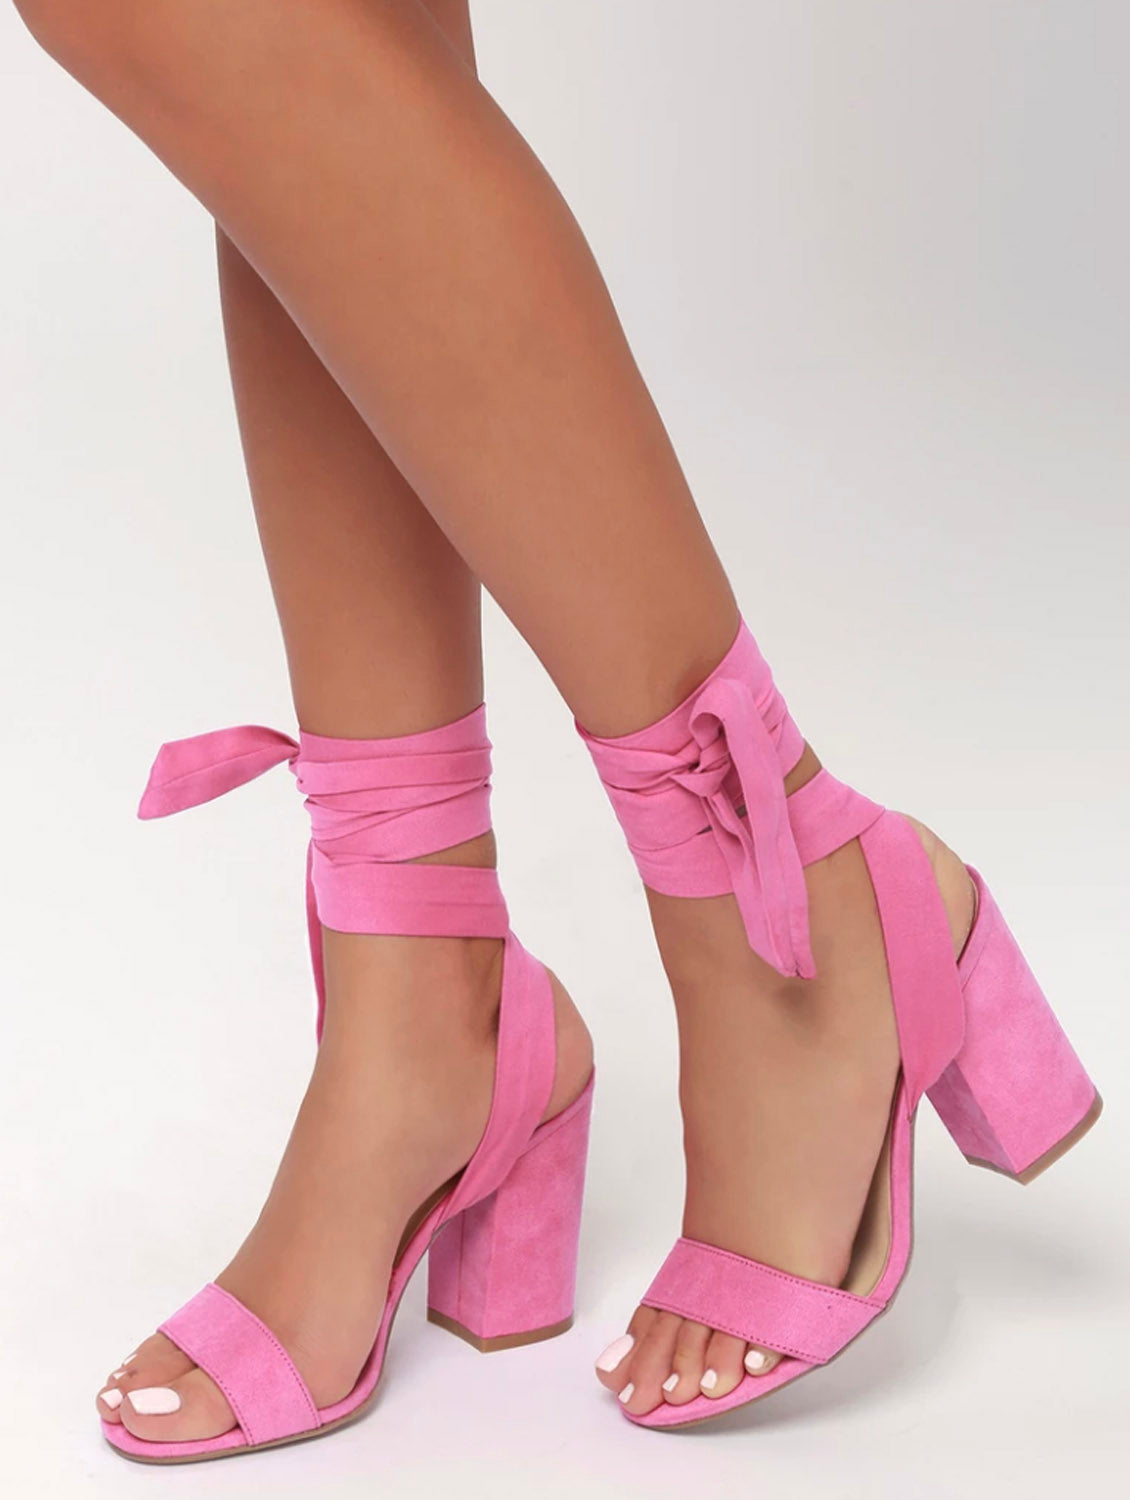 Closeup of strappy pink shoes